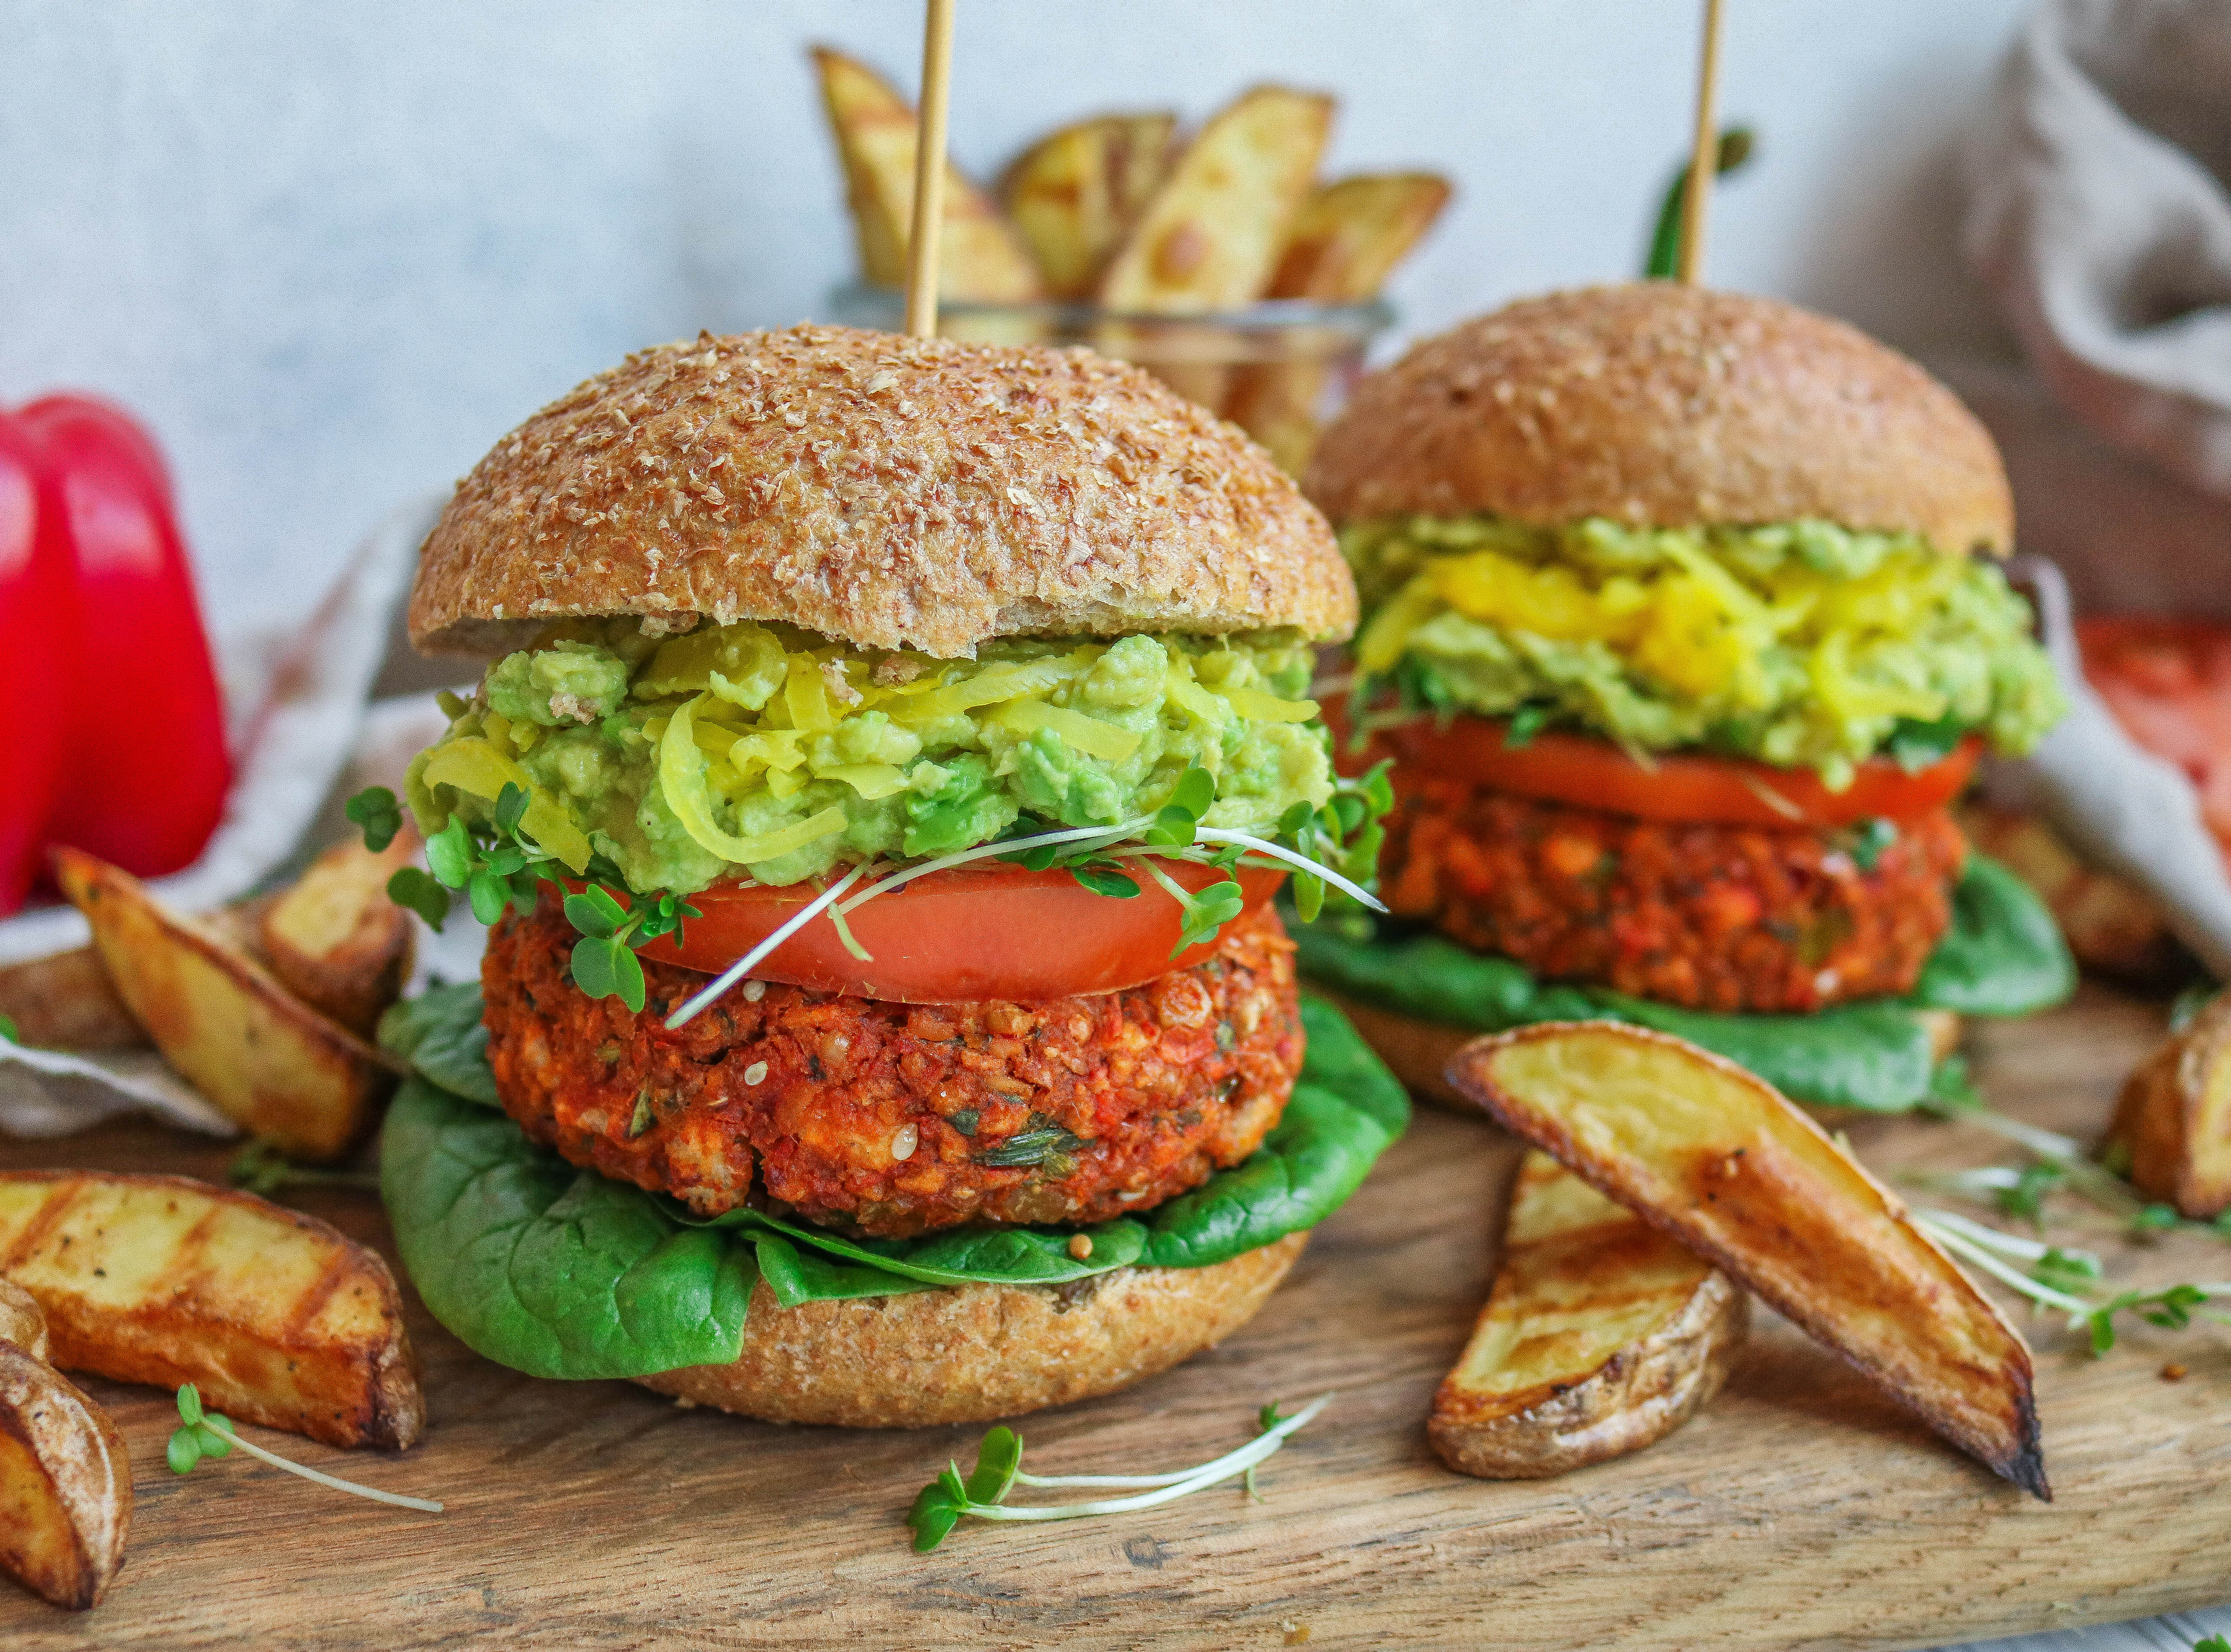 Roasted Red Pepper & Chickpea Burgers